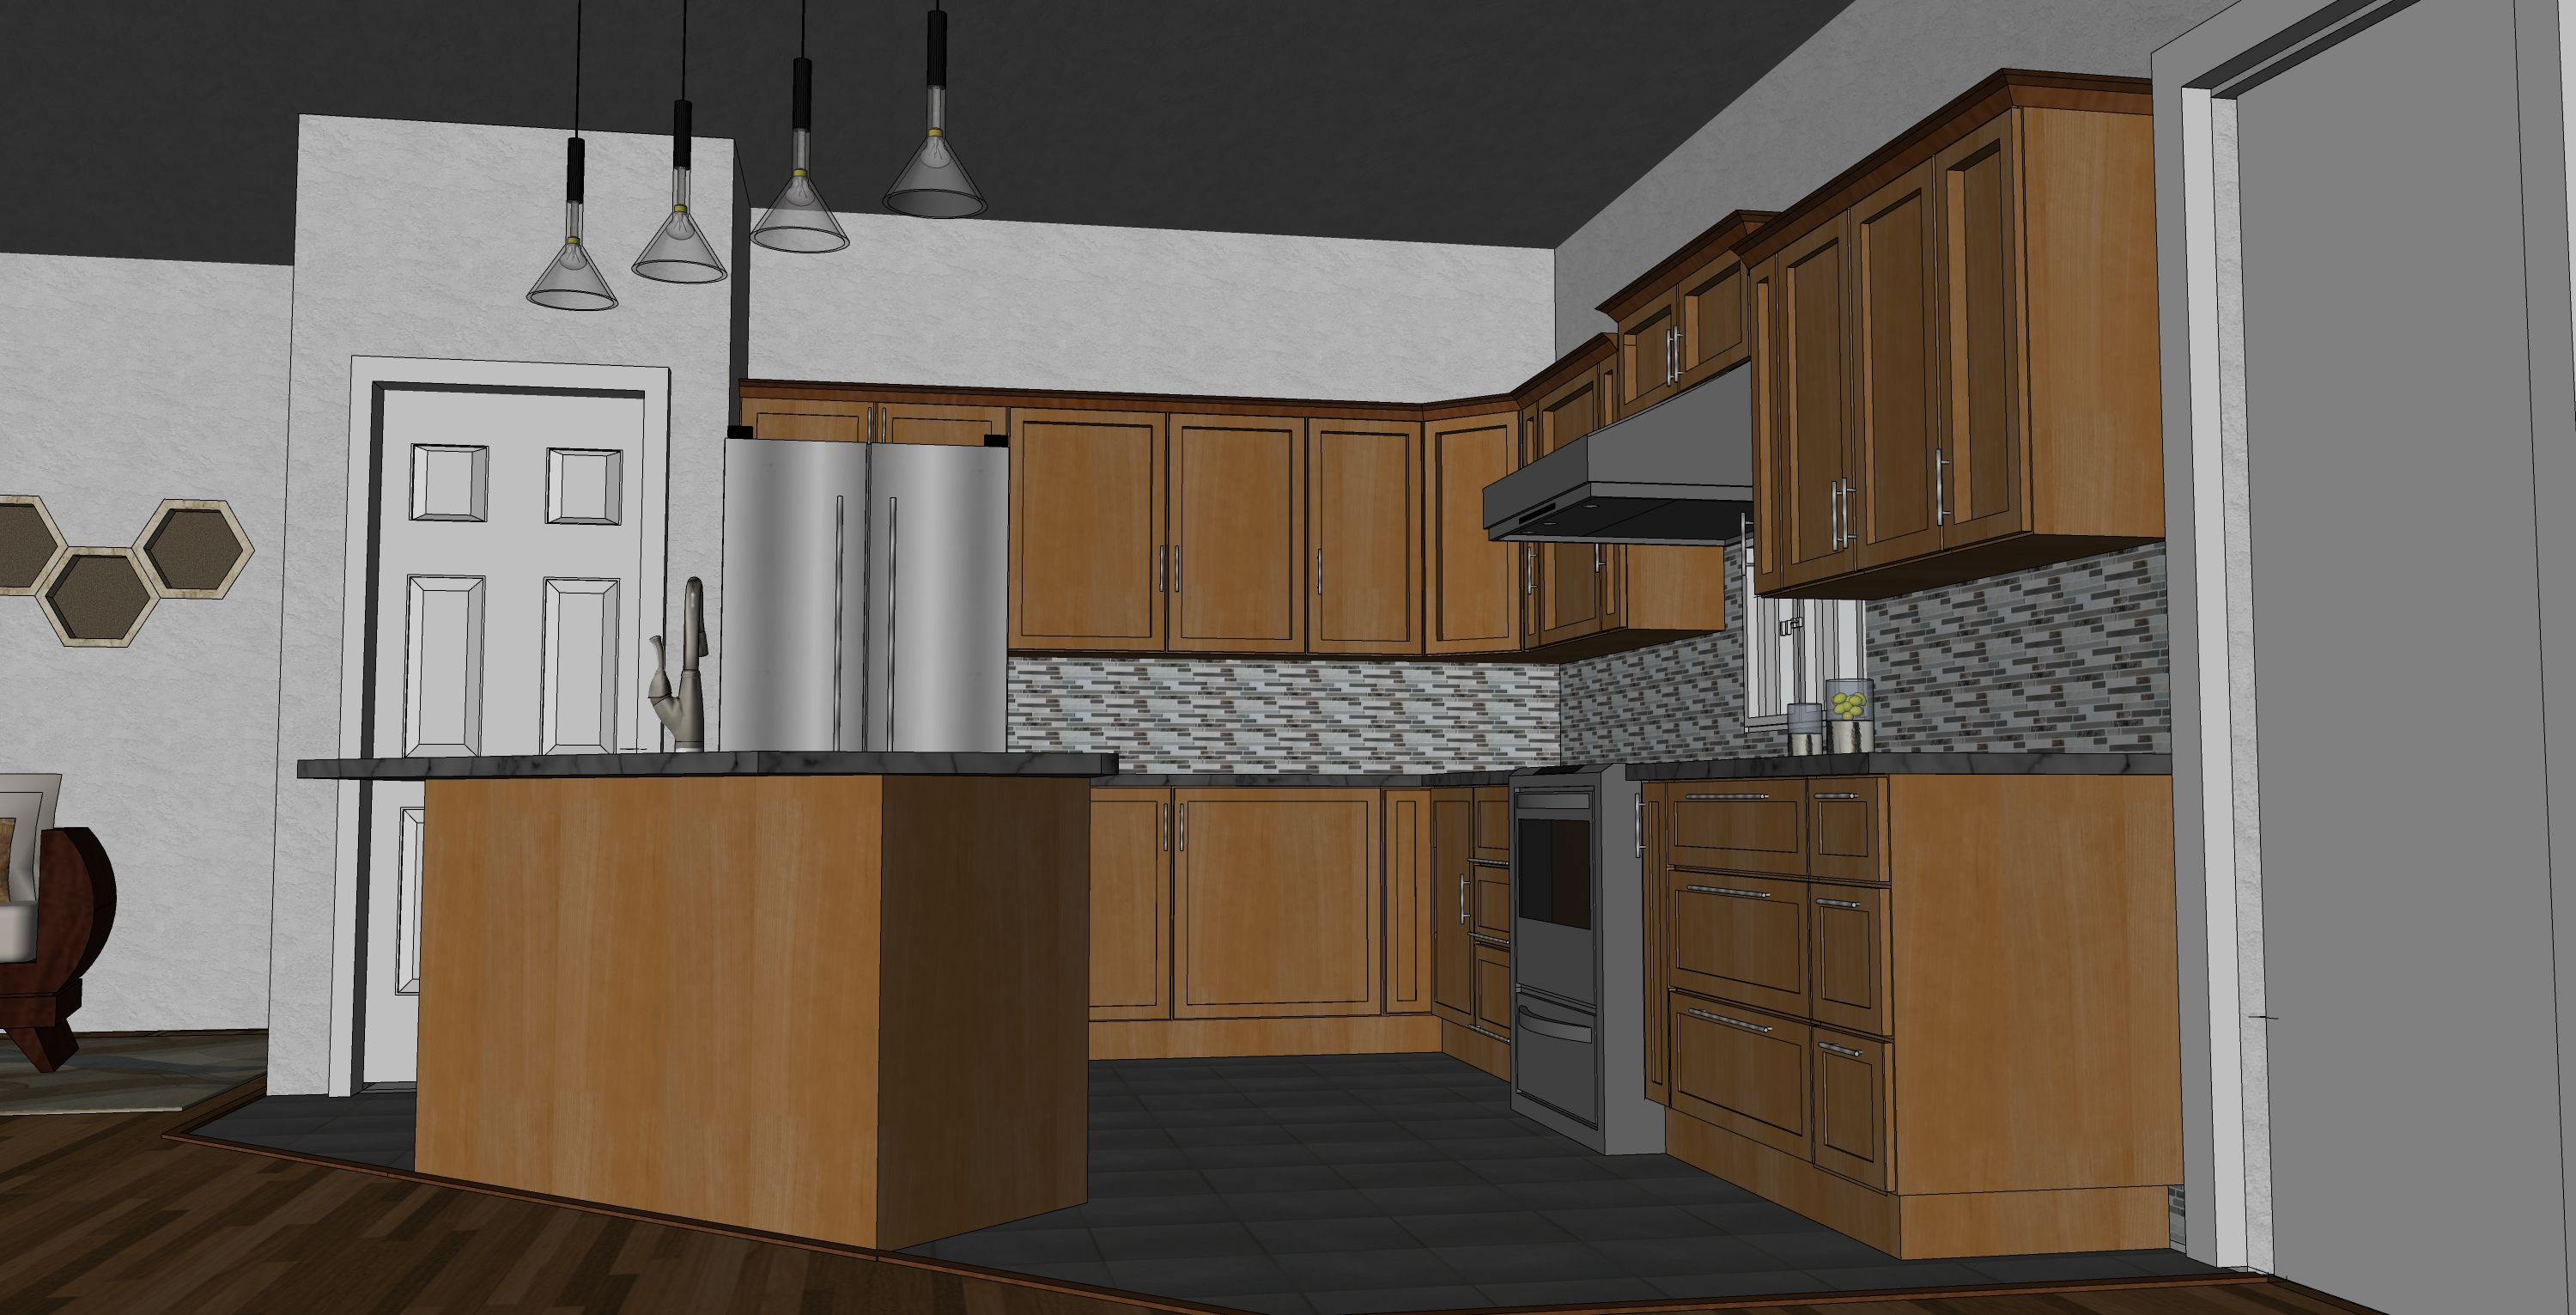 The Original Sketchup Model I Made Kitchen Design Design Kitchen